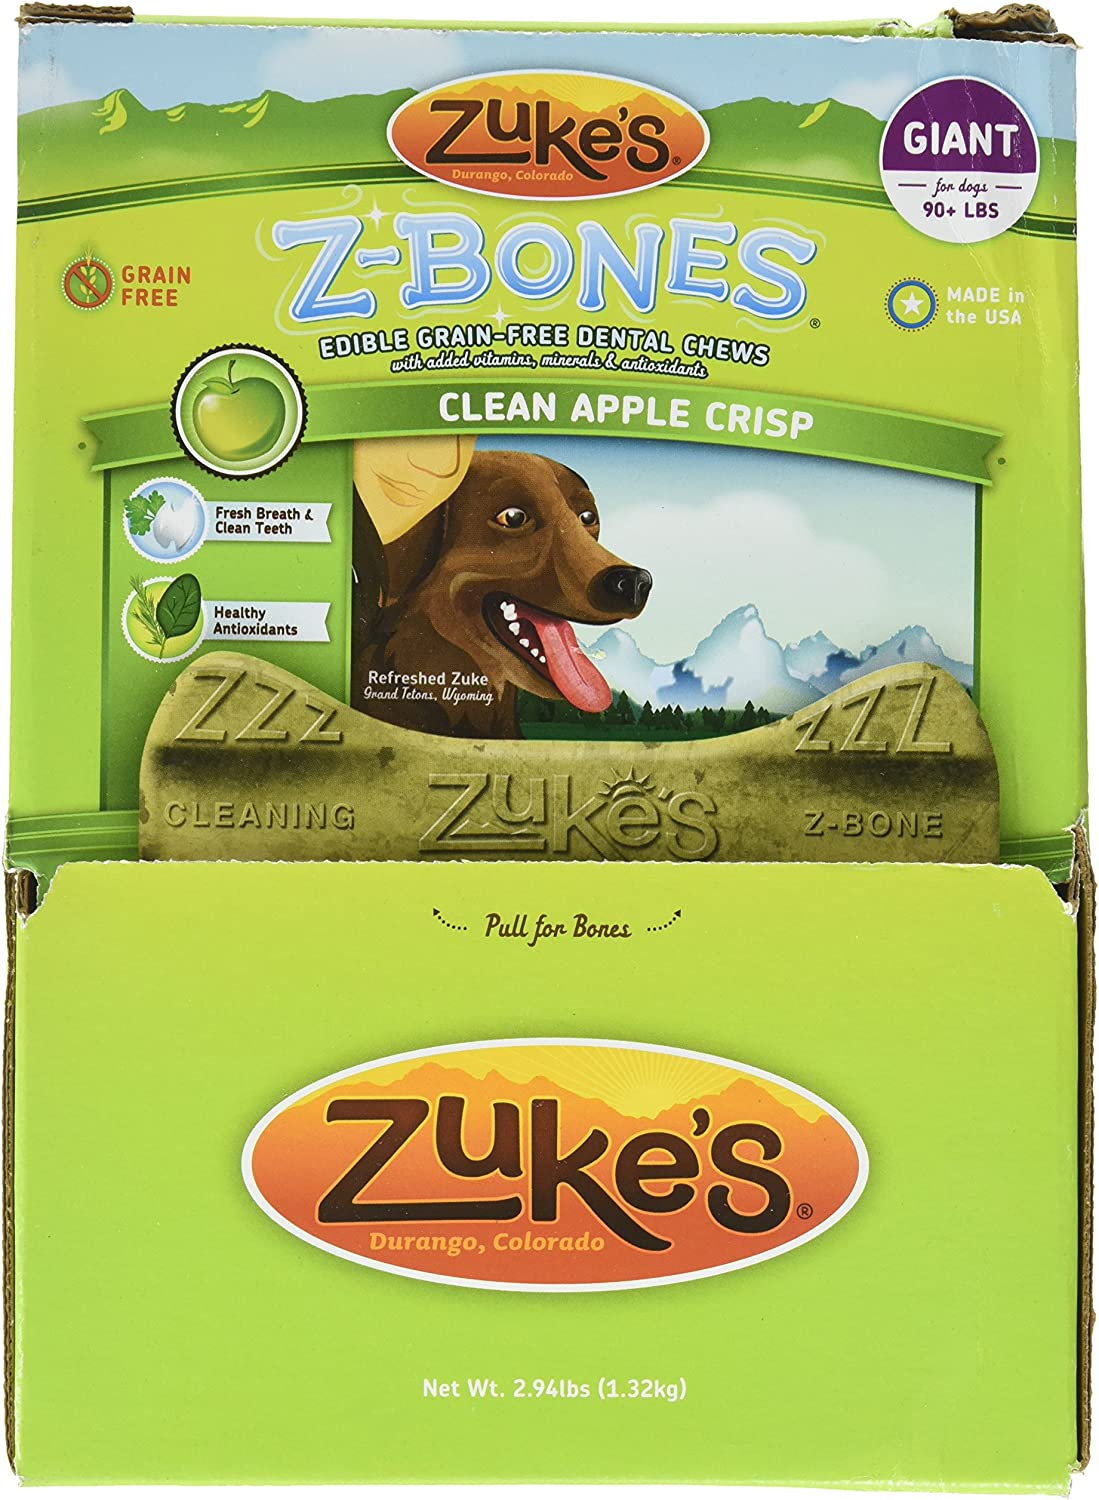 Zuke S Performance Pet Nutrition 134096 12 Count Z-Bone Giant Apple Crisp Display Box, Large